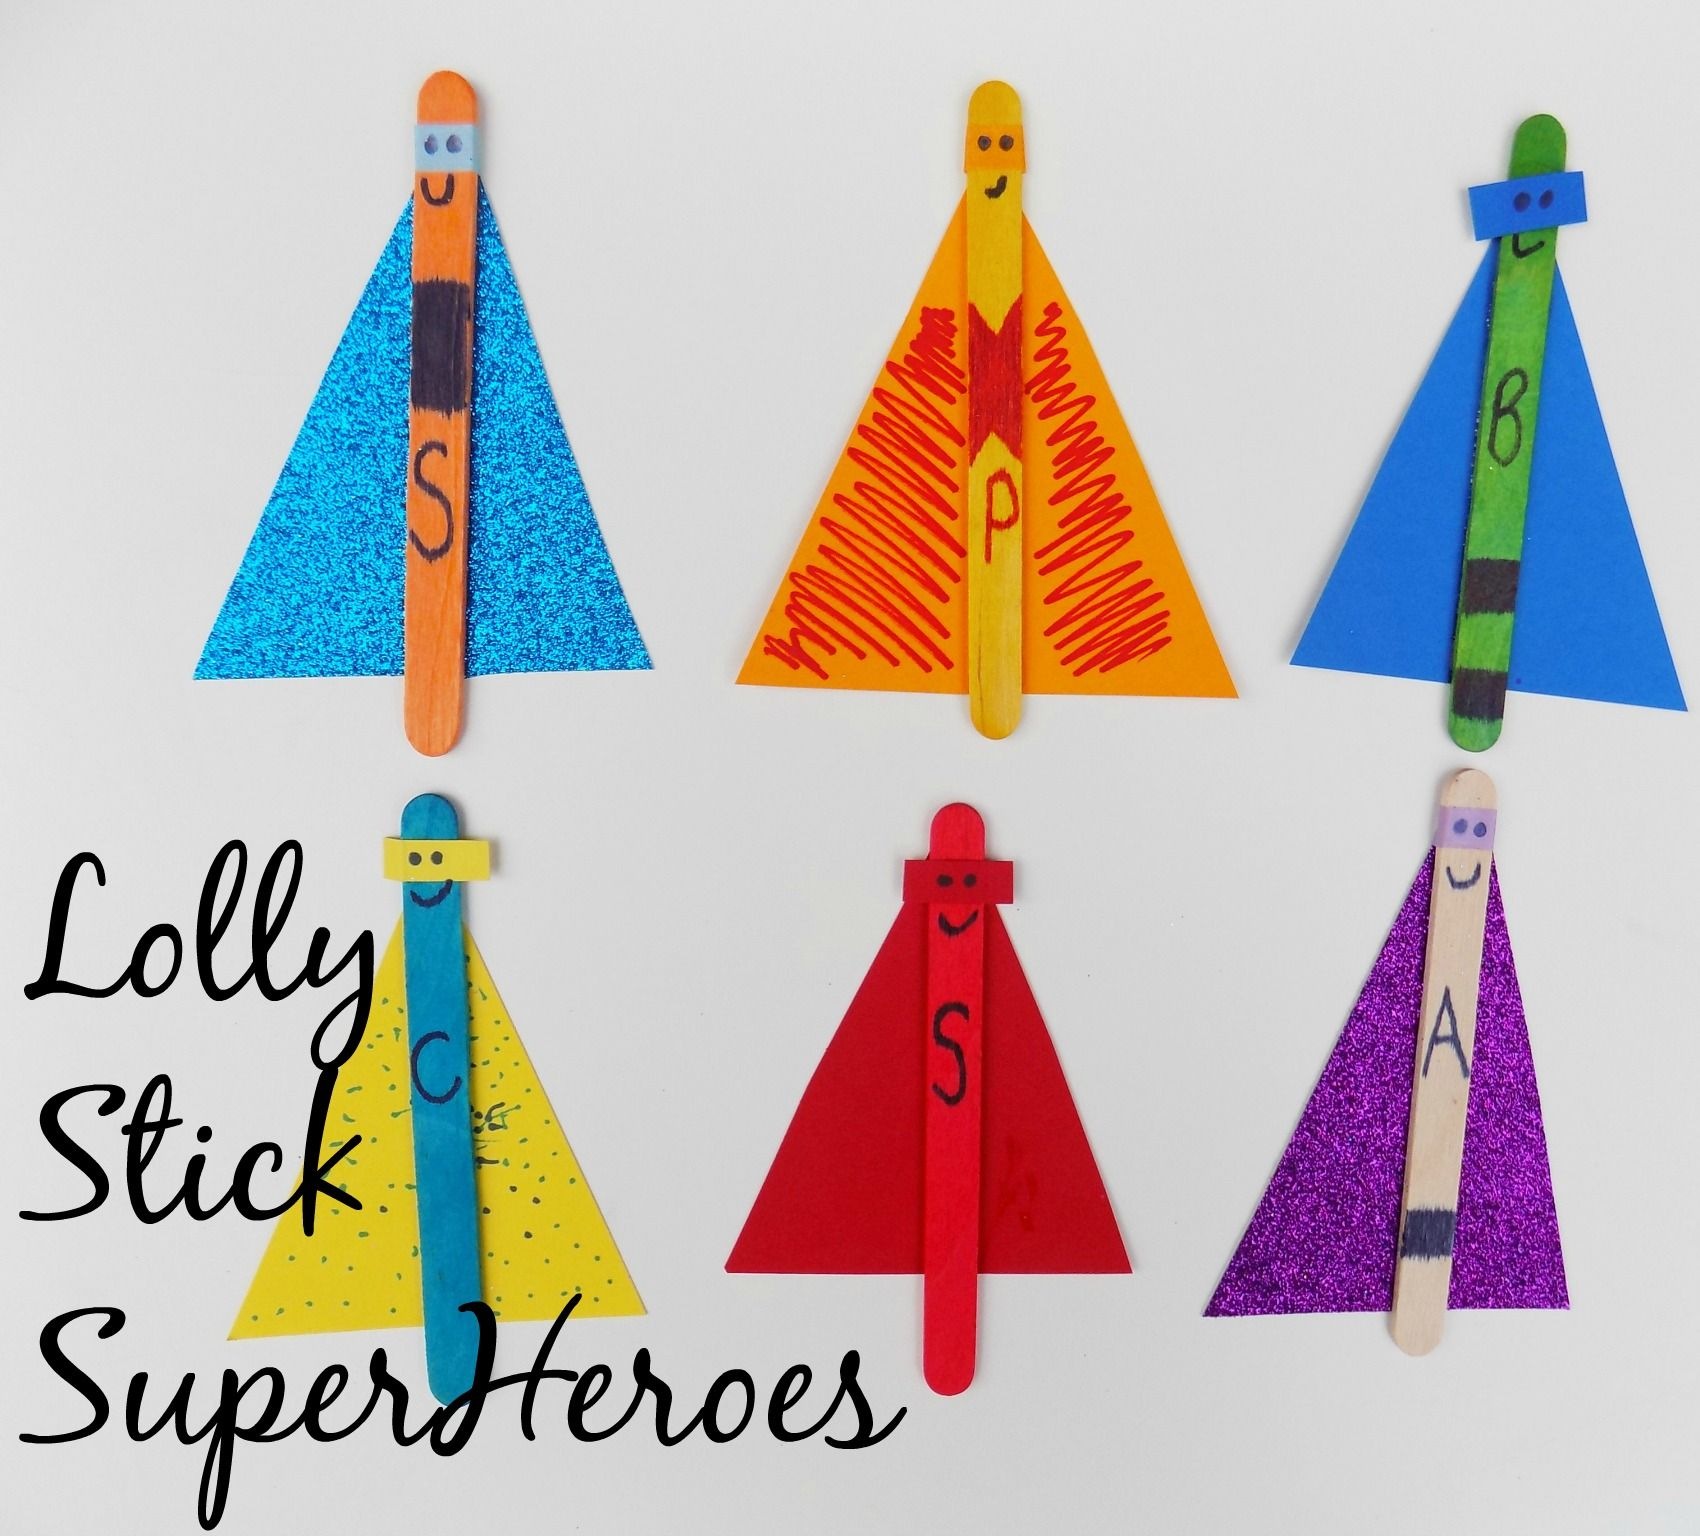 Lolly Stick Superheroes